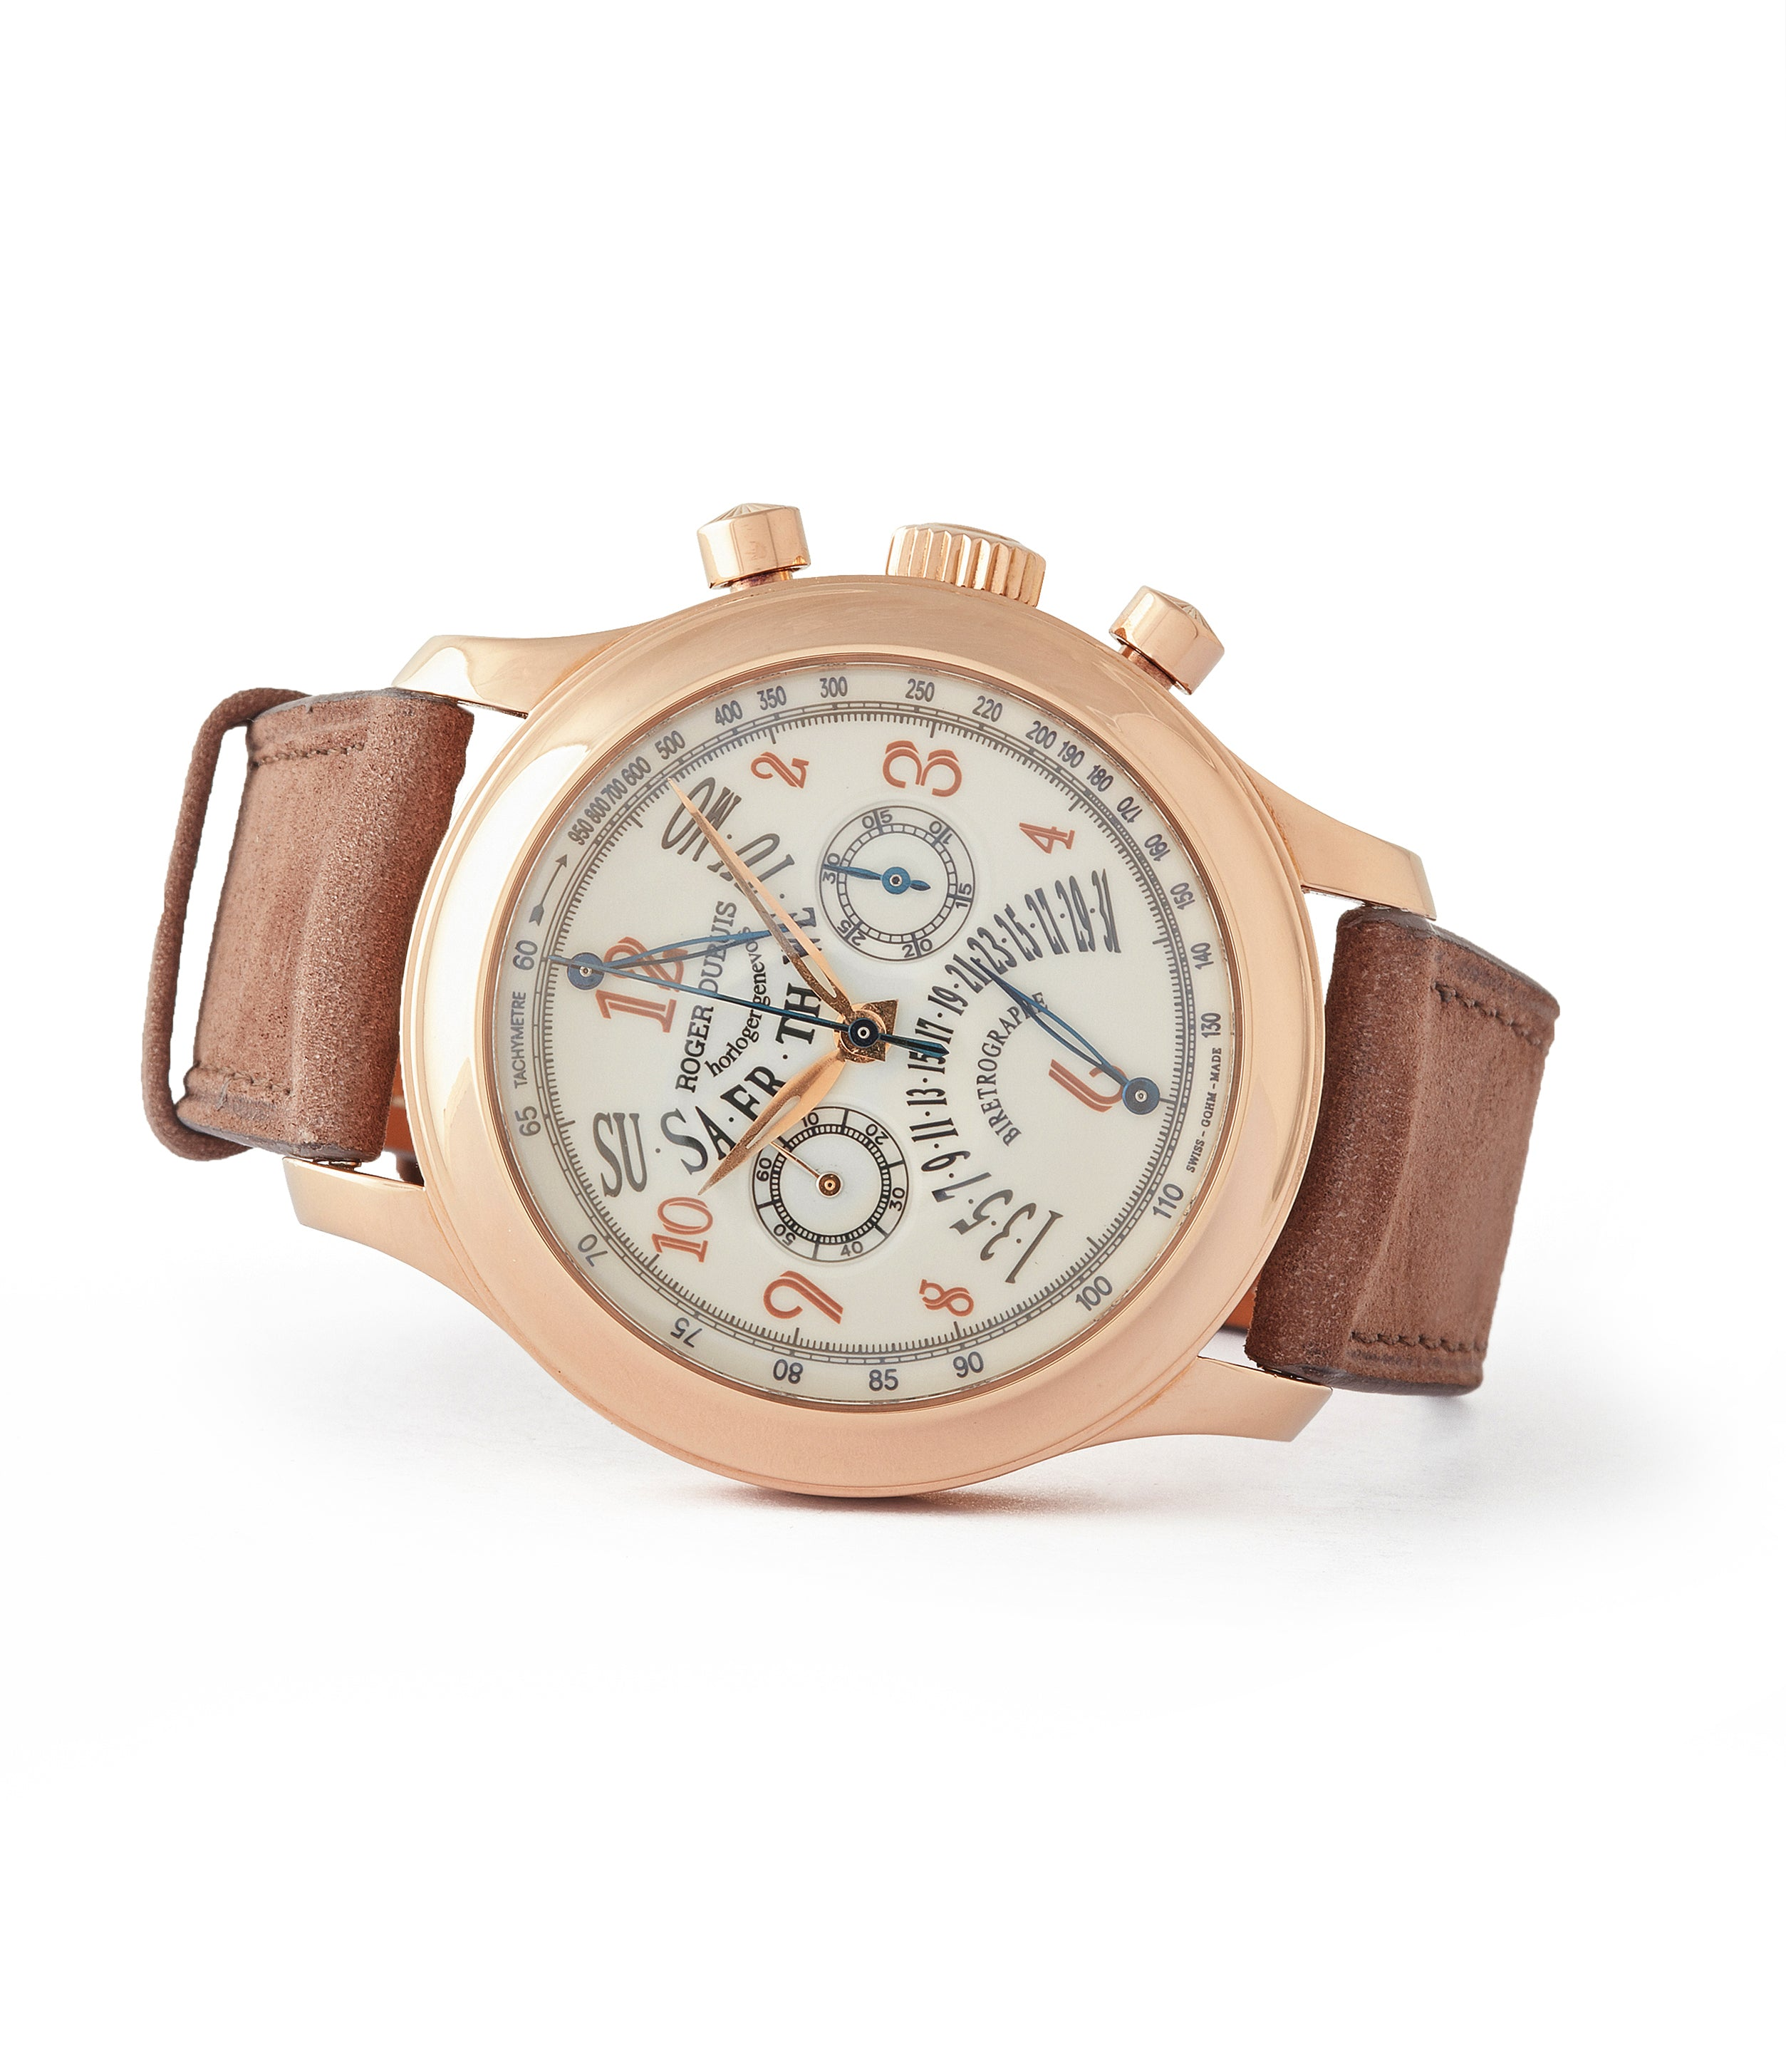 side-shot Roger Dubuis H40 560 Hommage bi-retrograde Chronograph limited edition rare rose gold lacquer dial watch for sale online at A Collected Man London UK specialist of rare watches